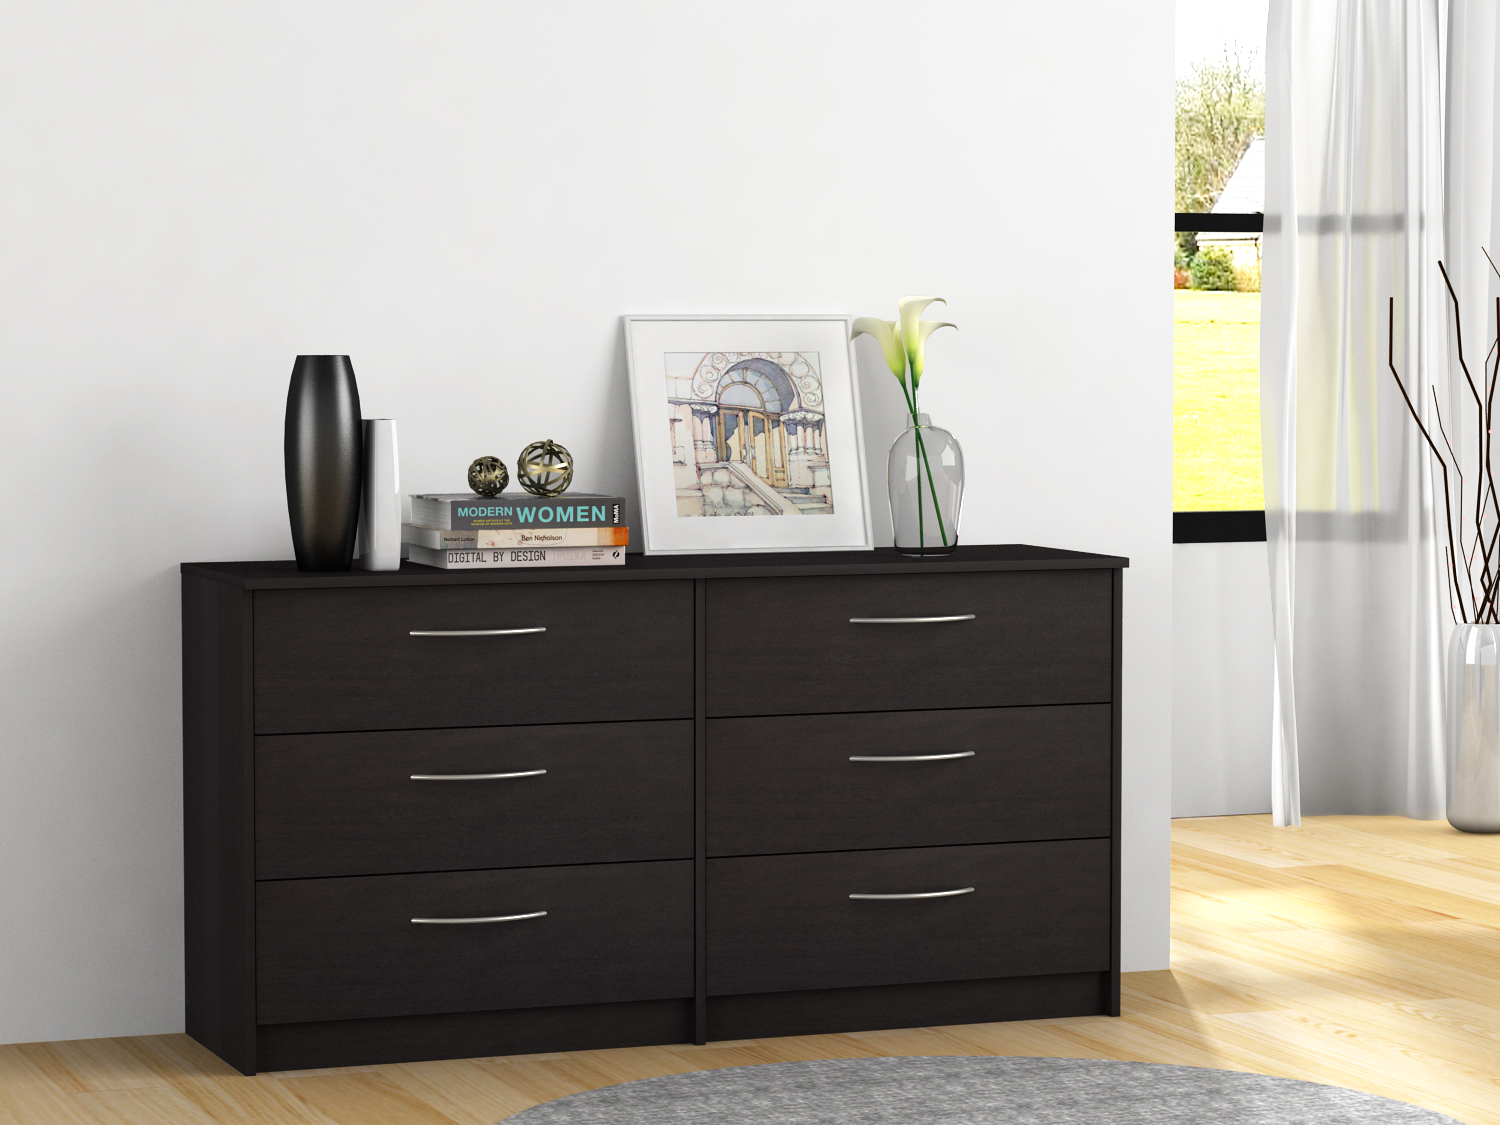 Homestar Finch Collection 6-Drawer Dresser, Multiple Finishes by HOMESTAR NORTH AMERICA LLC